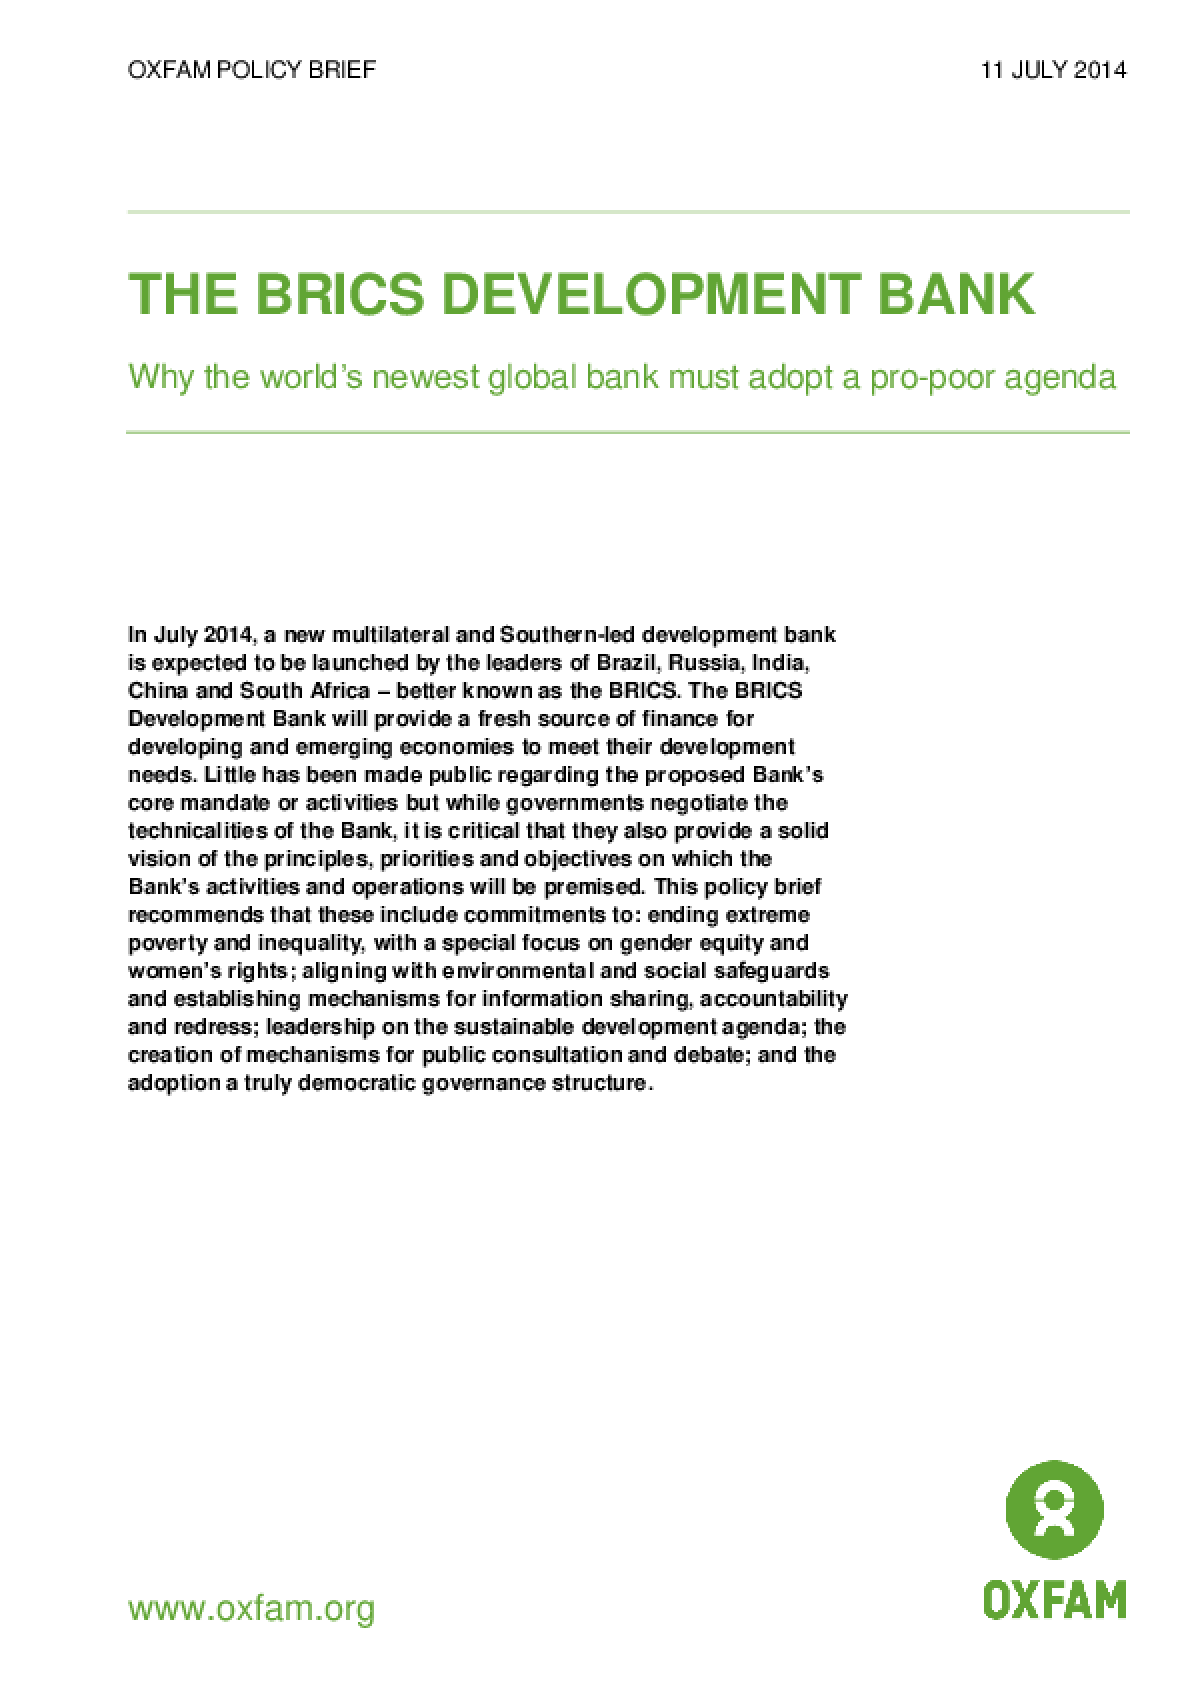 The BRICS Development Bank: Why the world's newest global bank must adopt a pro-poor agenda